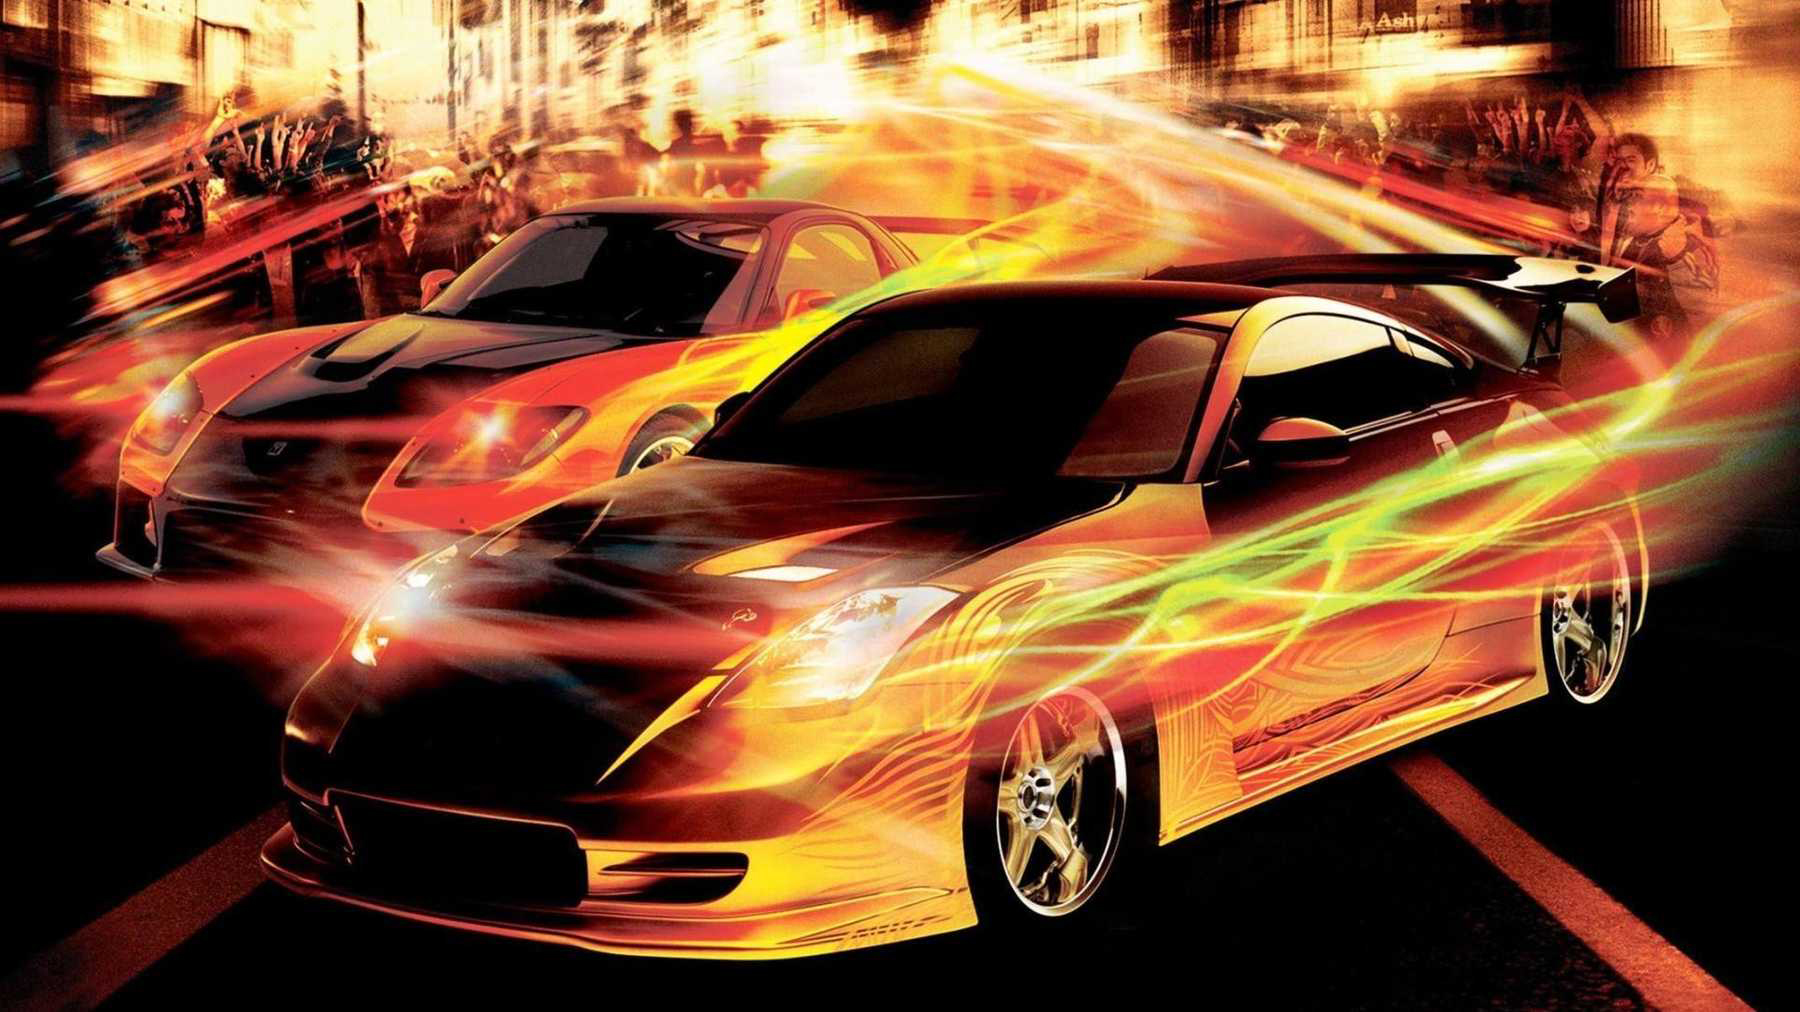 1. Fast and Furious Cars